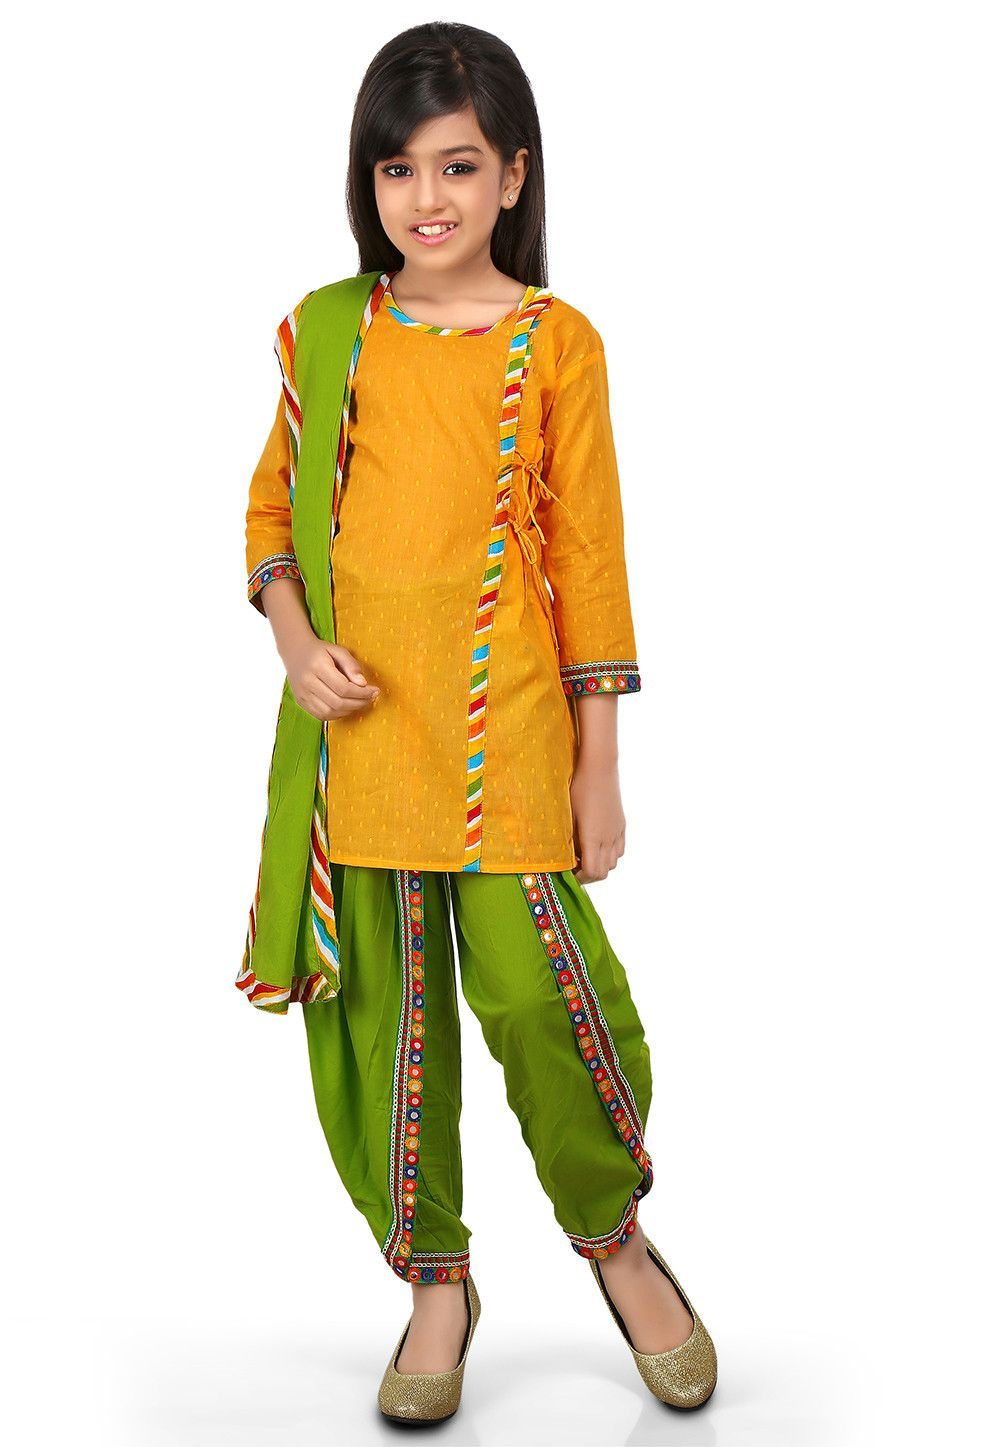 fc0fd45907f2 PLAIN COTTON JACQUARD ANGRAKHA STYLE A LINE SUIT IN YELLOW